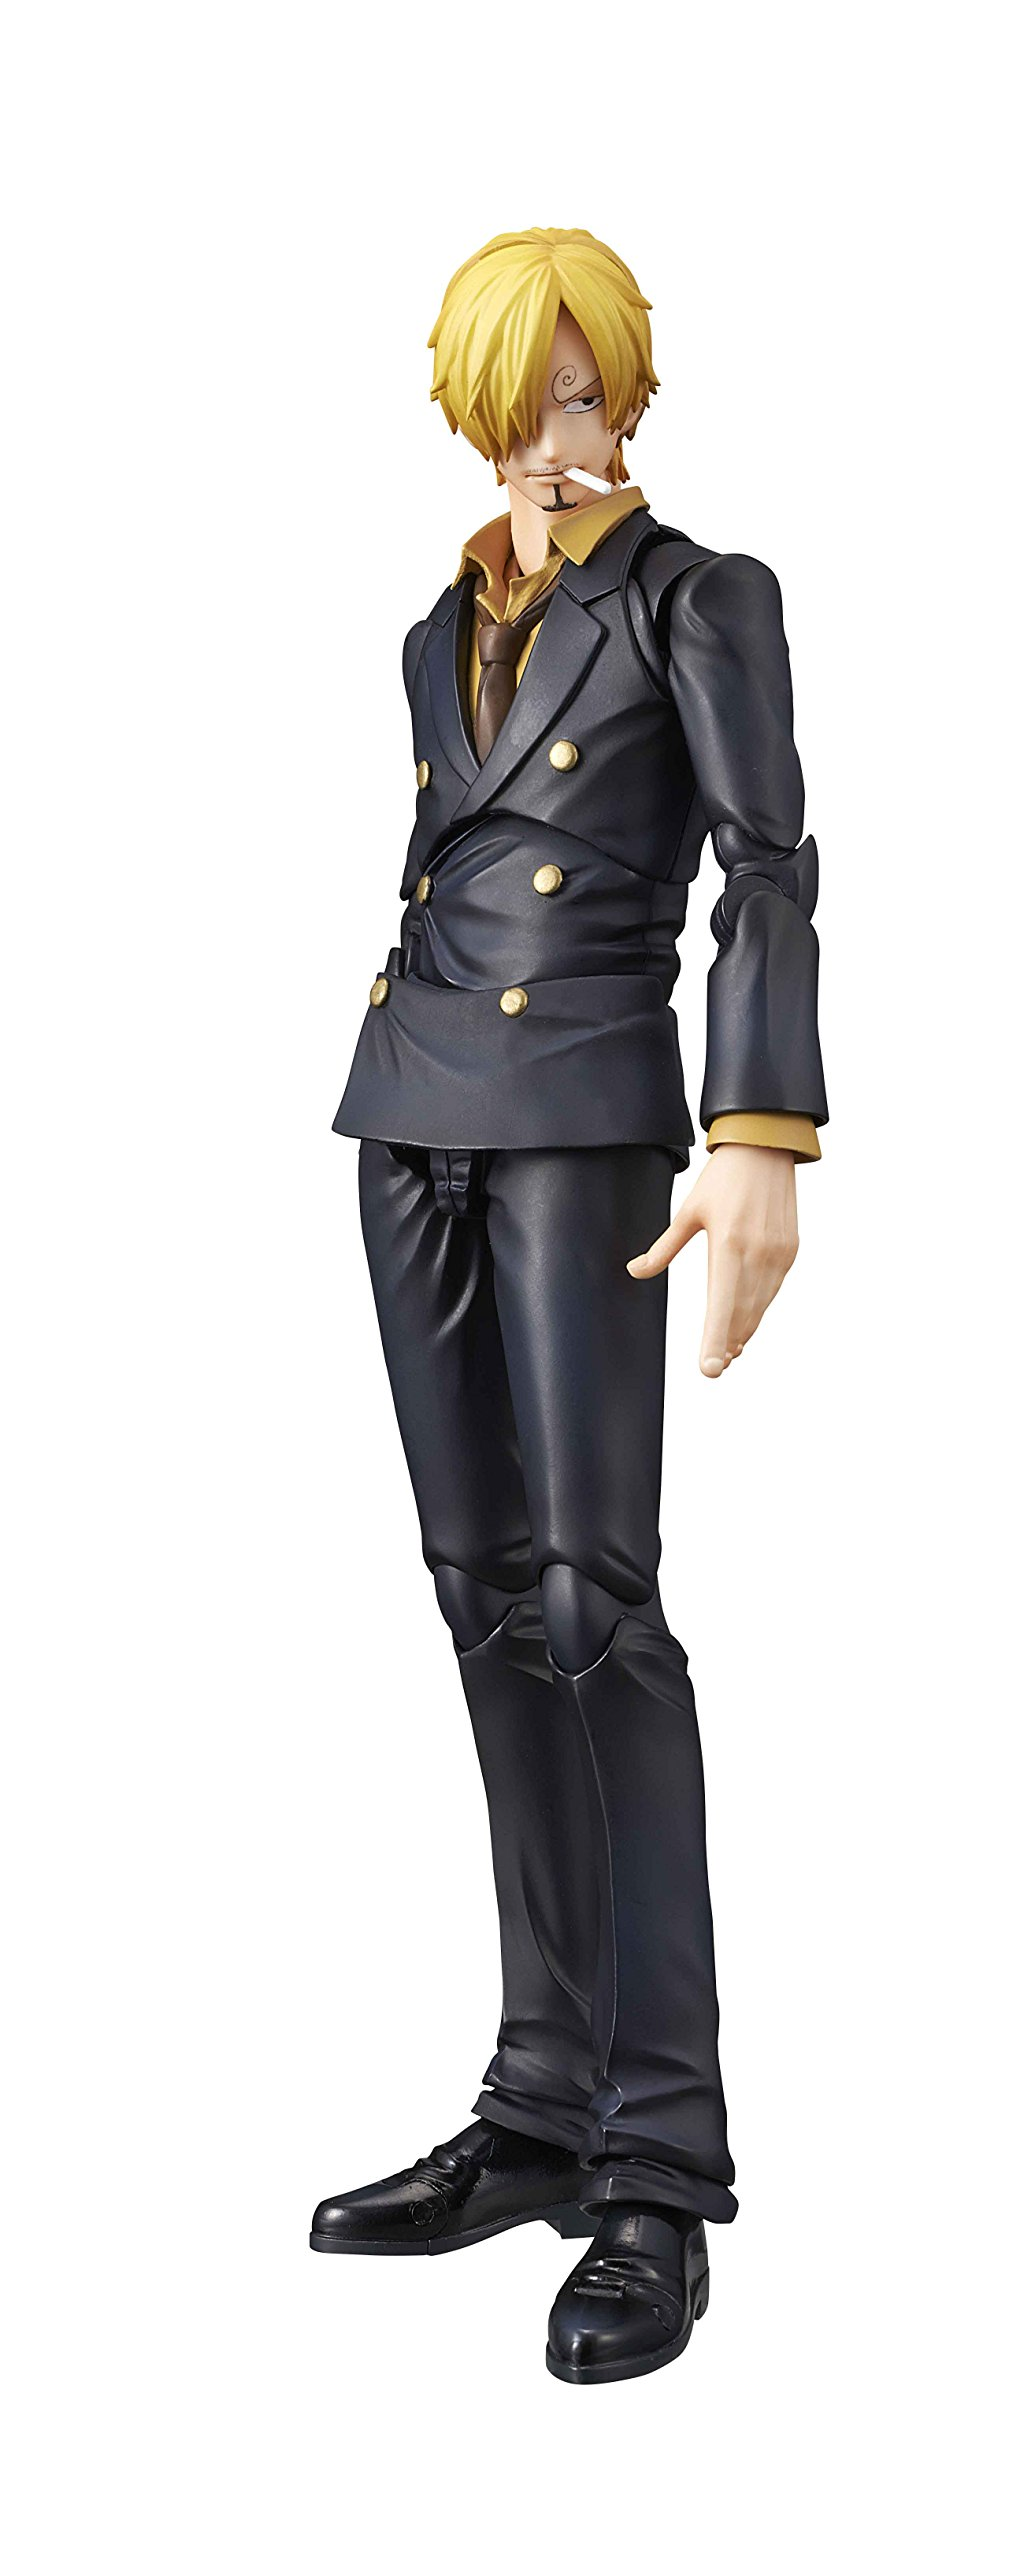 Megahouse One Piece Sanji Variable Action Hero Action Figure